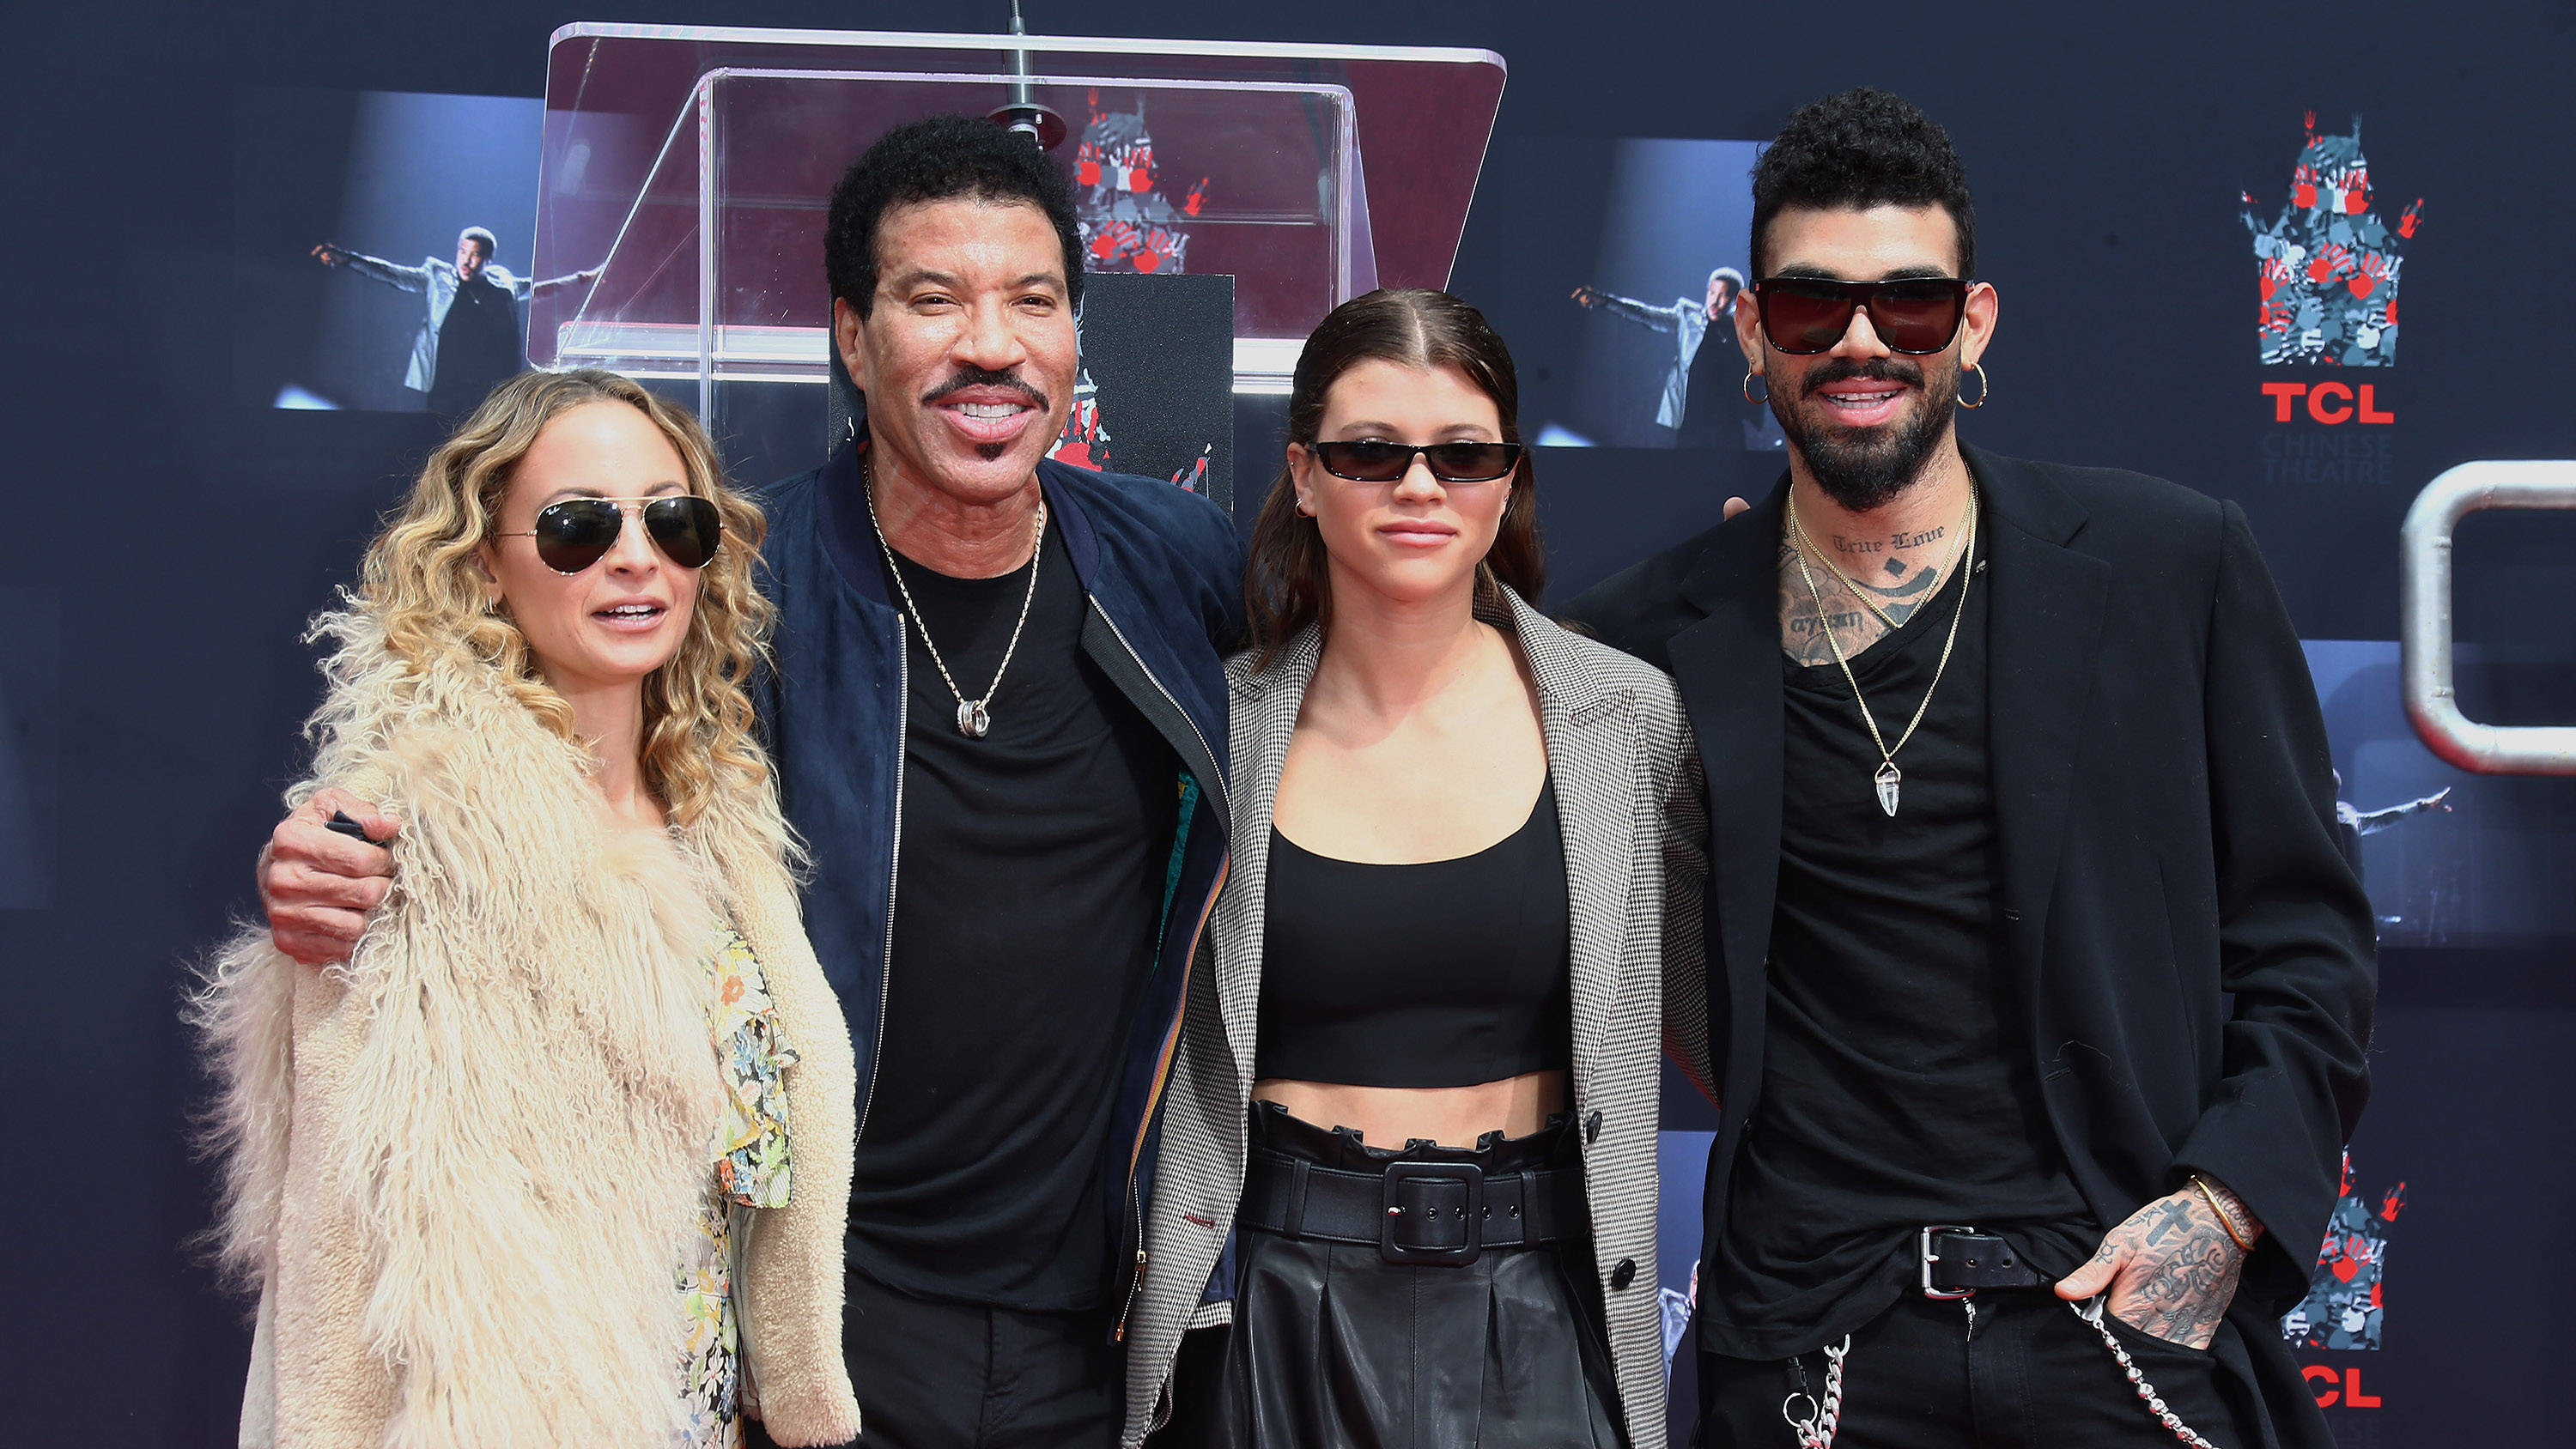 Lionel Richie Facts Who Is His Wife And How Many Children Does He Have Smooth